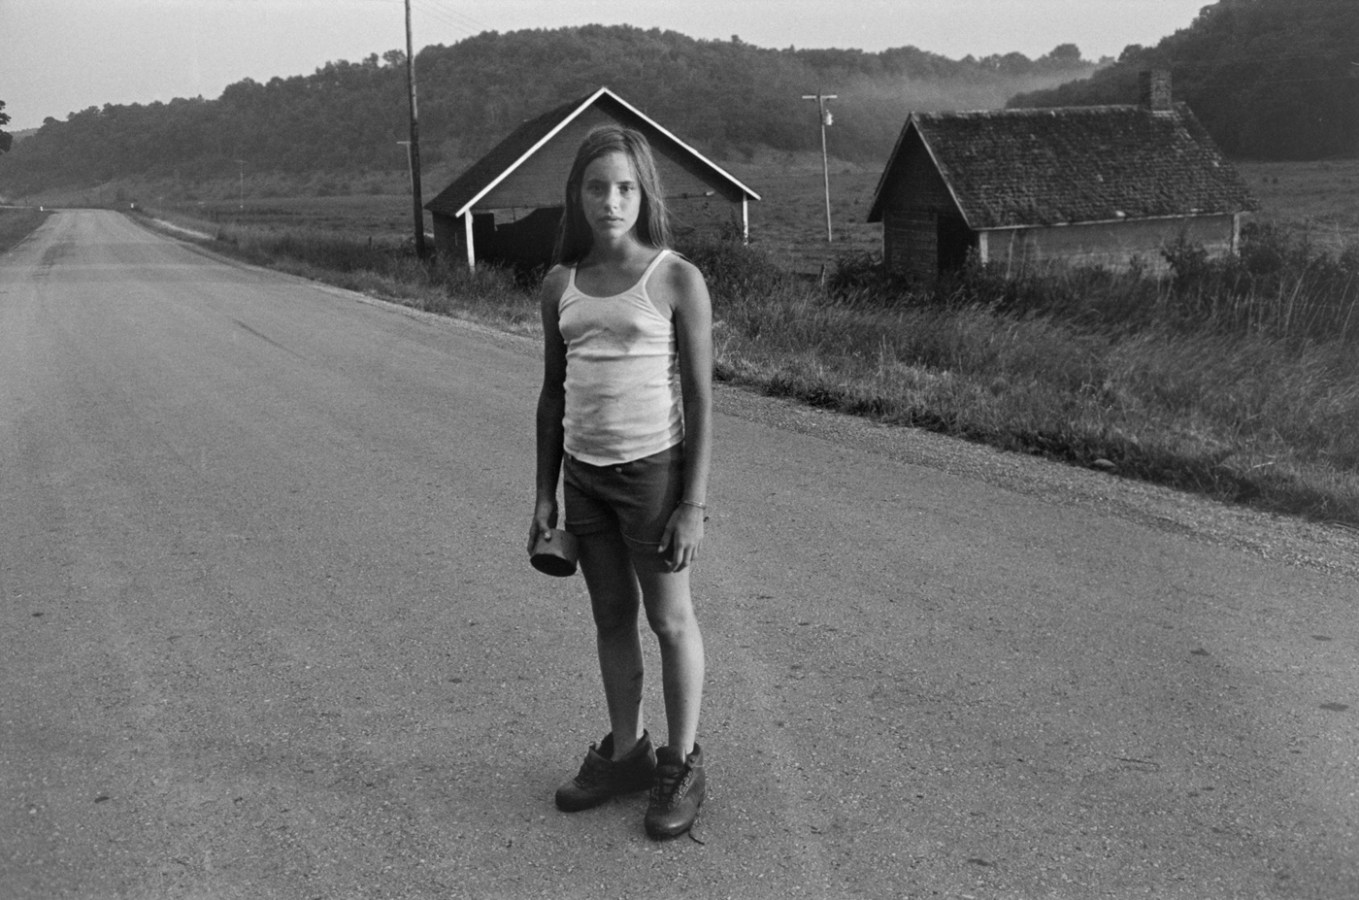 Black-and-white photograph of a girl standing in a dirt road with her head framed by a building in the background